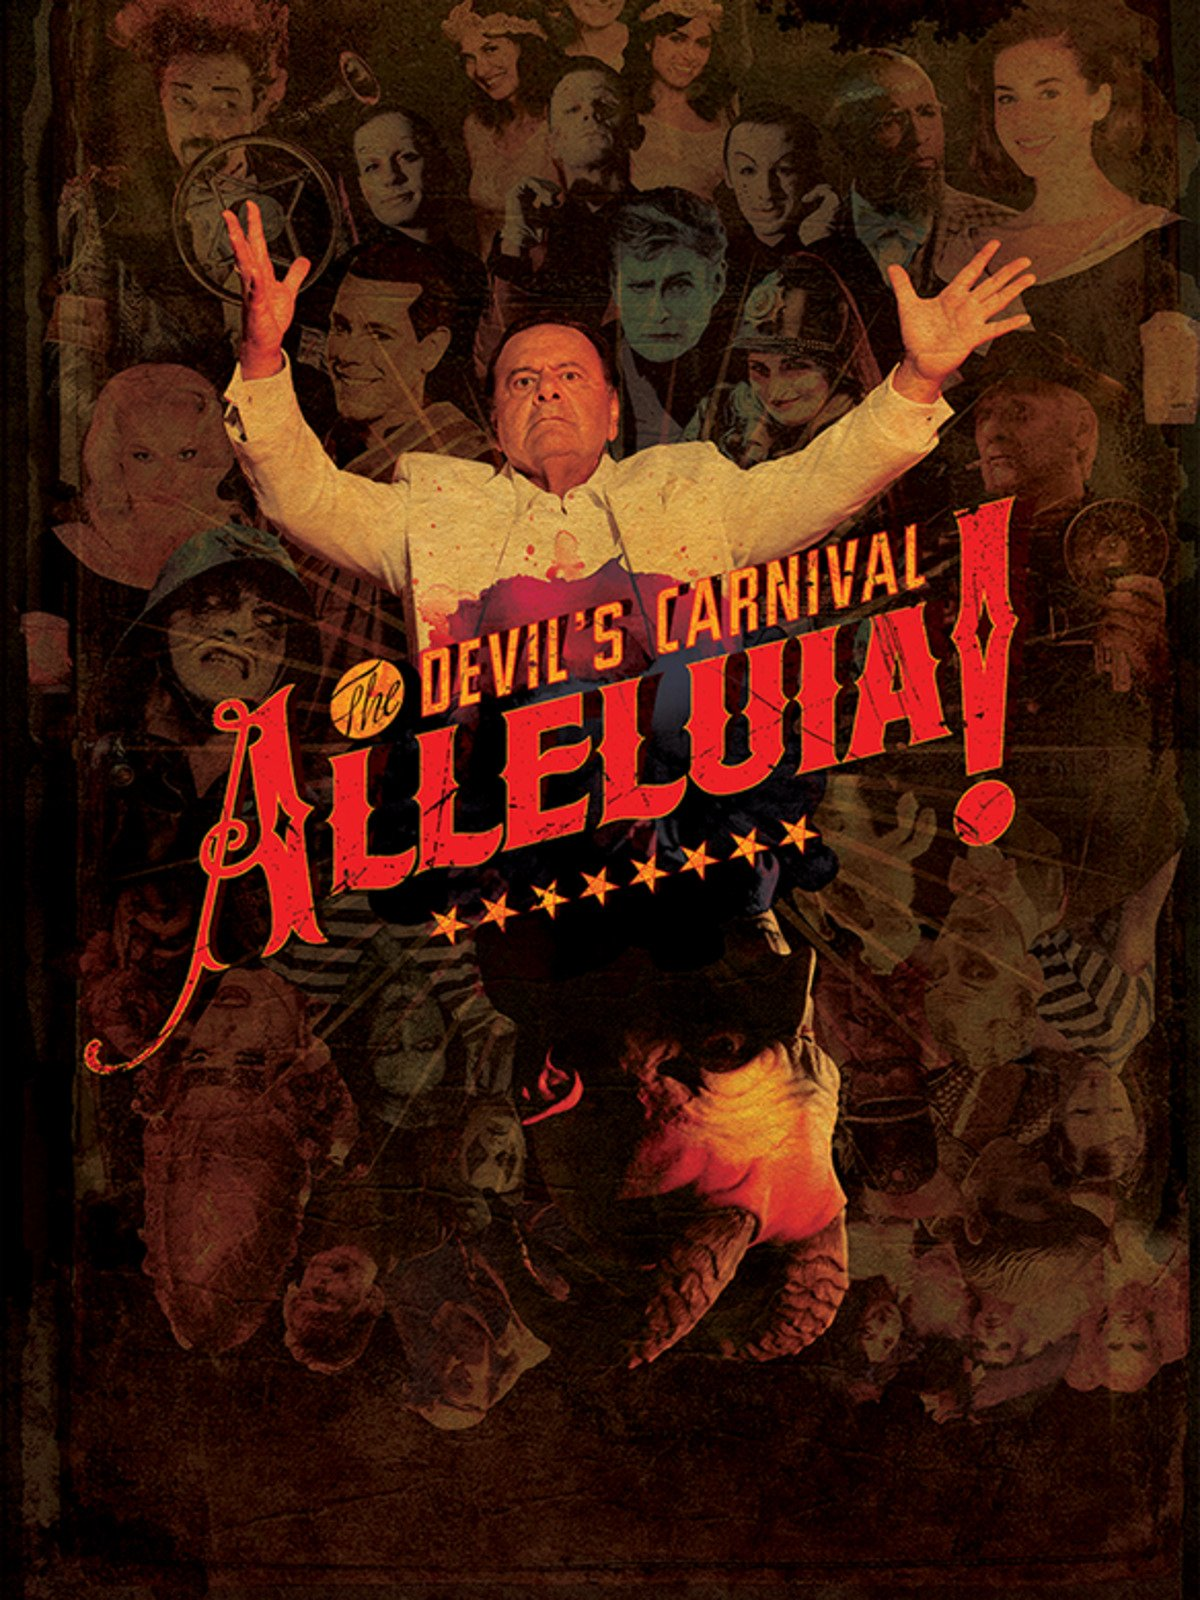 Alleluia! The Devil's Carnival